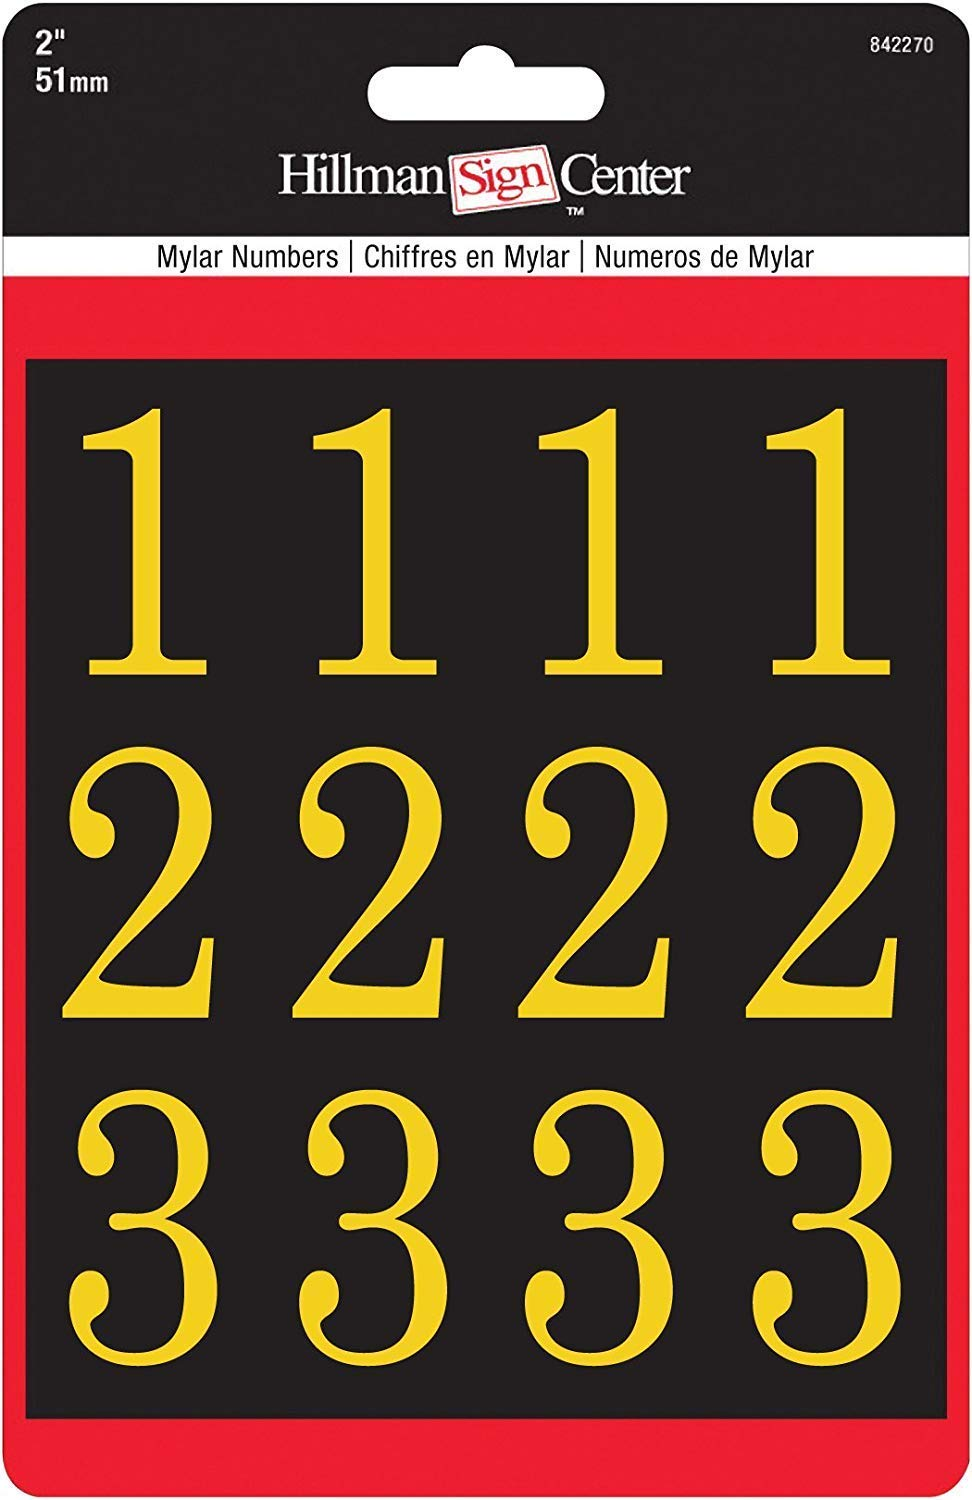 2-Inch Numbers Kit, Gold on Black, Square-Cut Mylar, Self-Adhesive (842270) - Six (6) Packs (Kits)